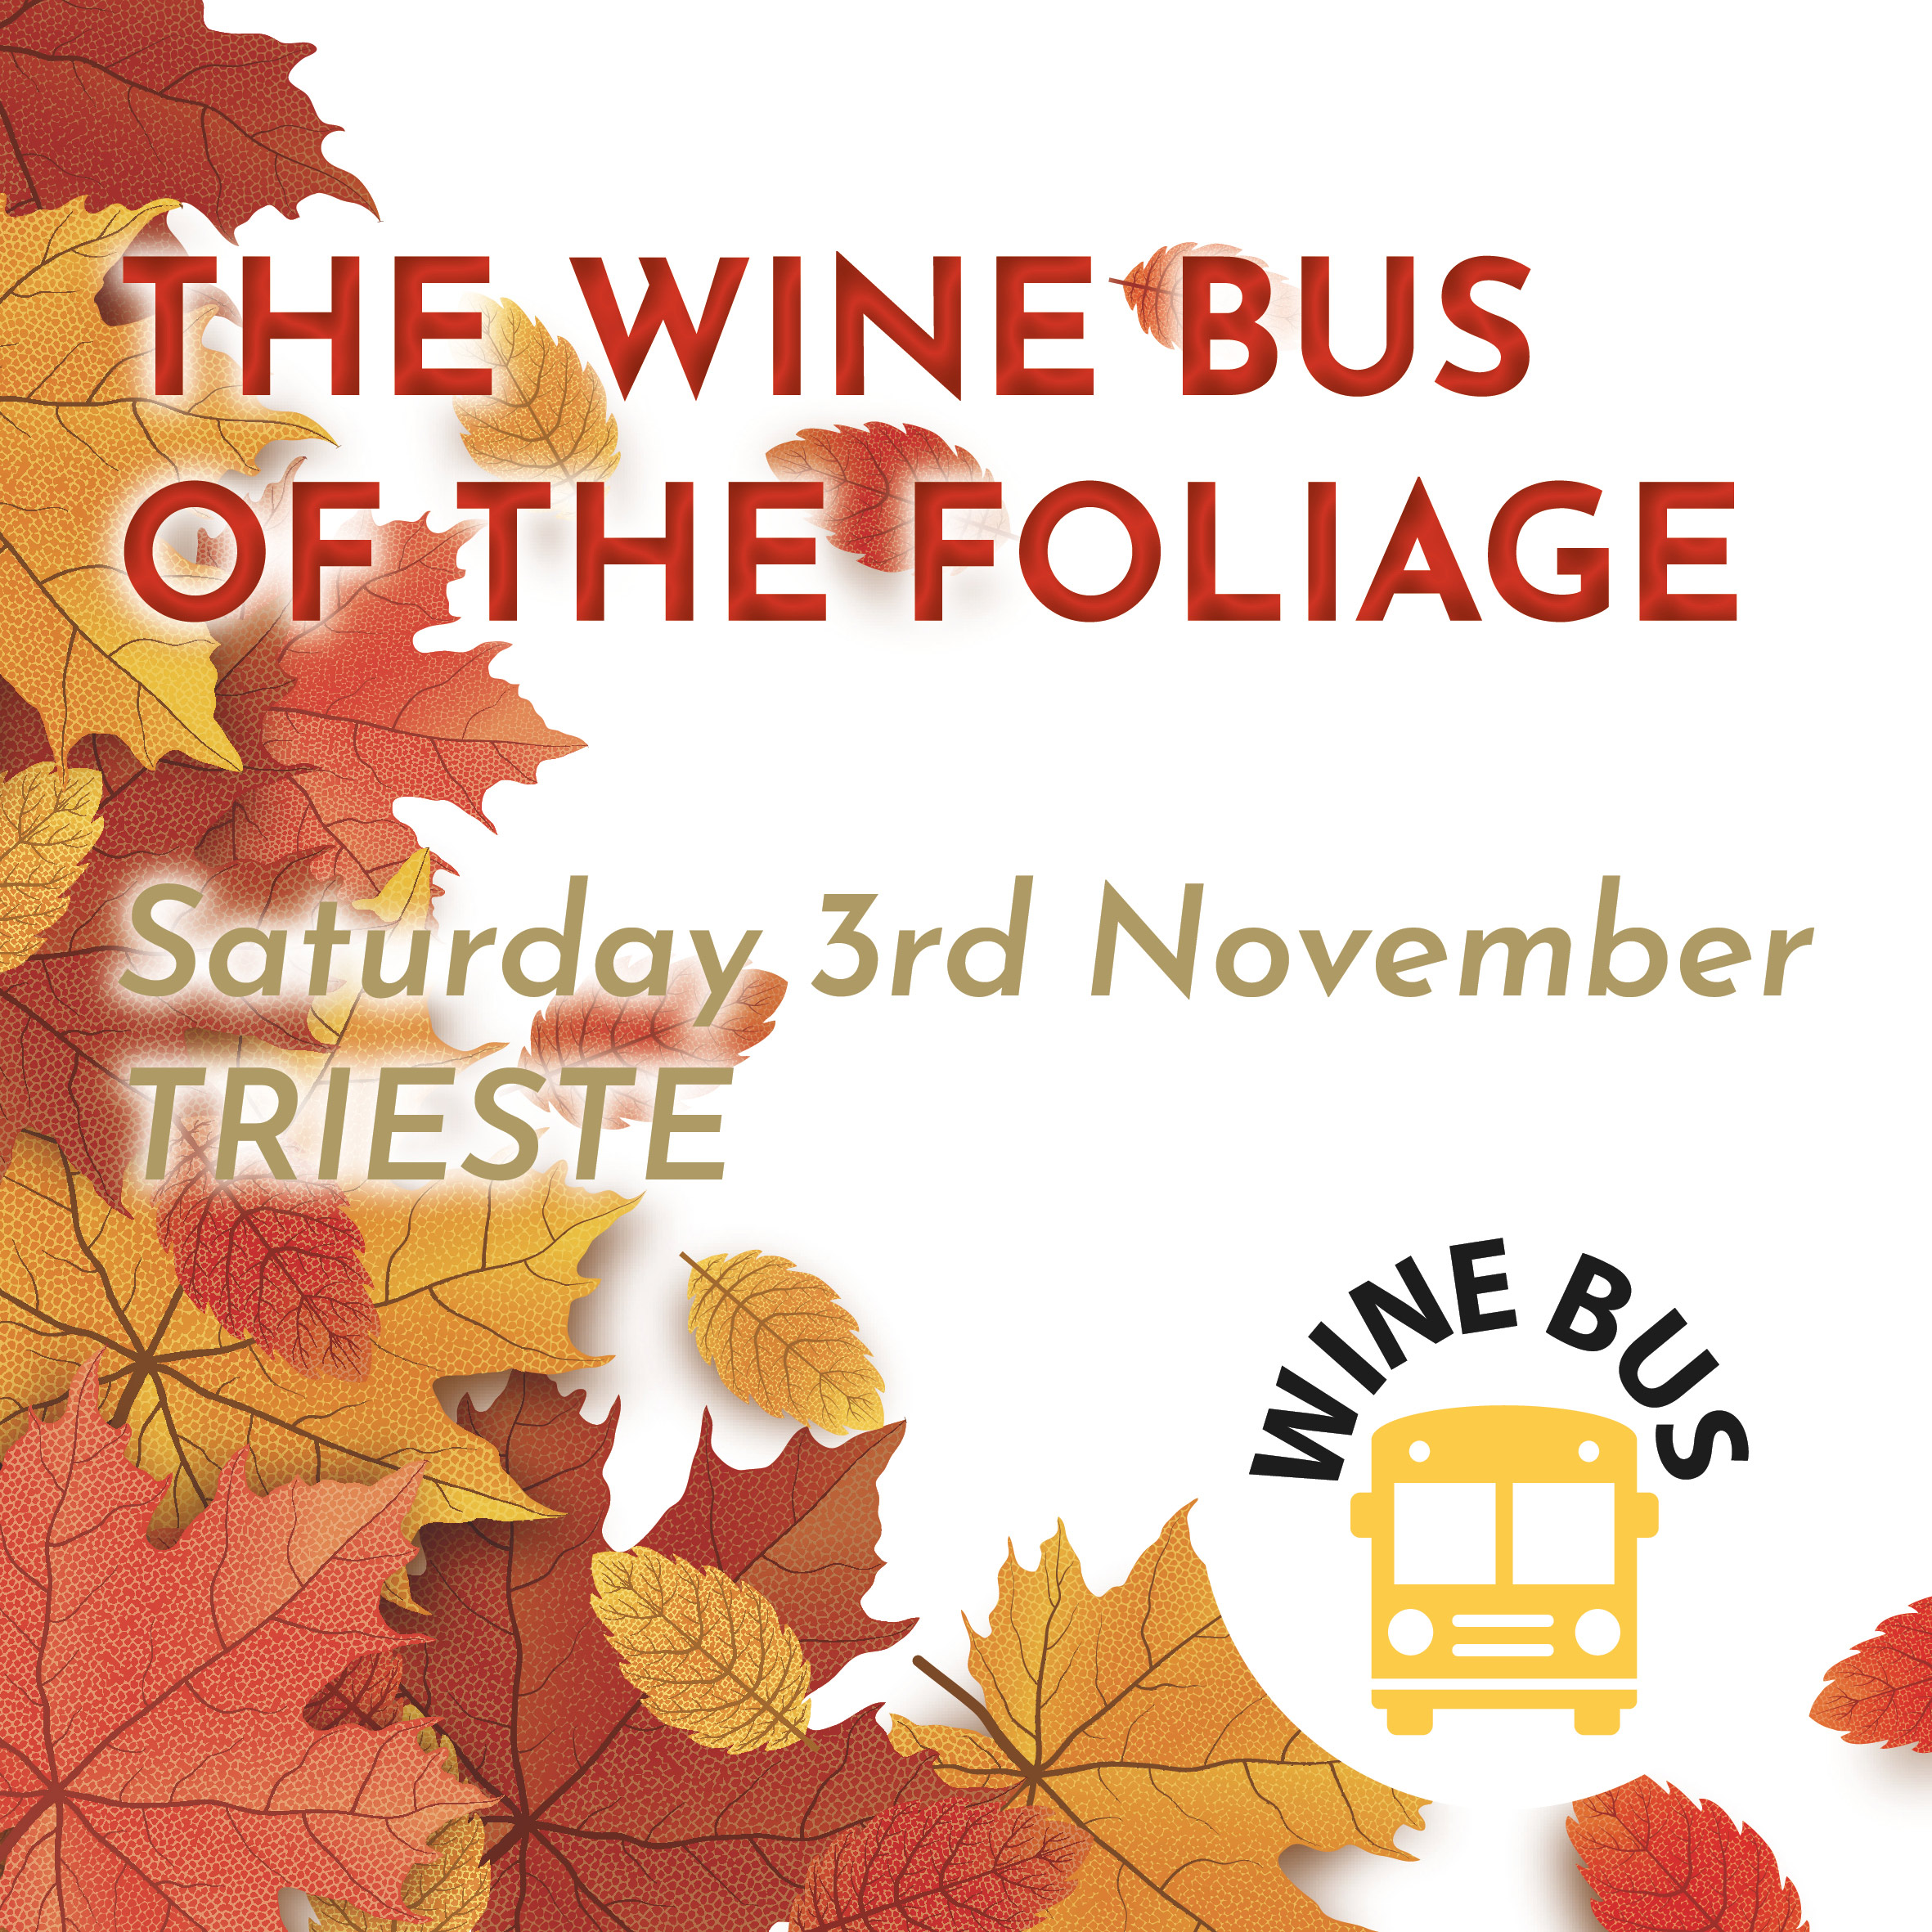 The Wine Bus of the Foliage